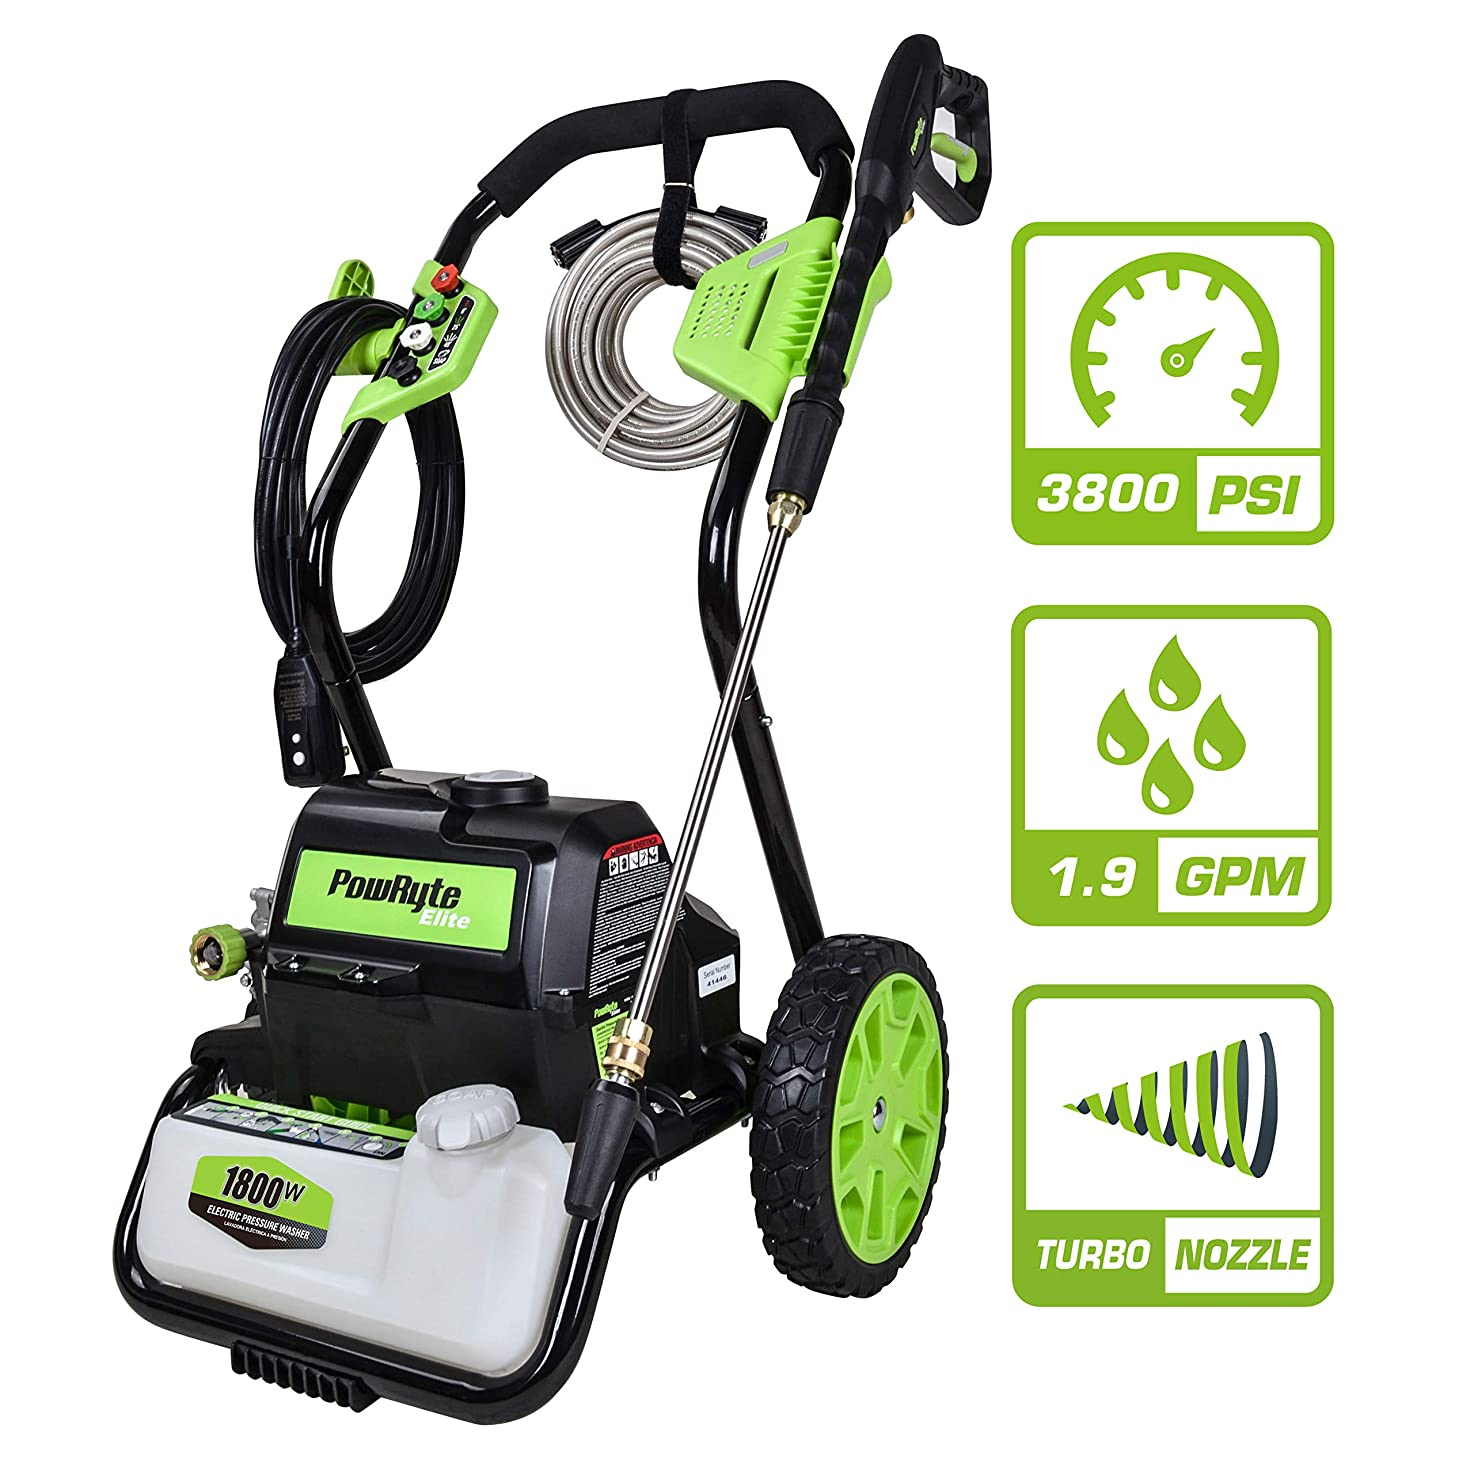 PowRyte Elite 3800 PSI 1.90 GPM Electric Pressure Washer, Electric Power Washer, Open Frame